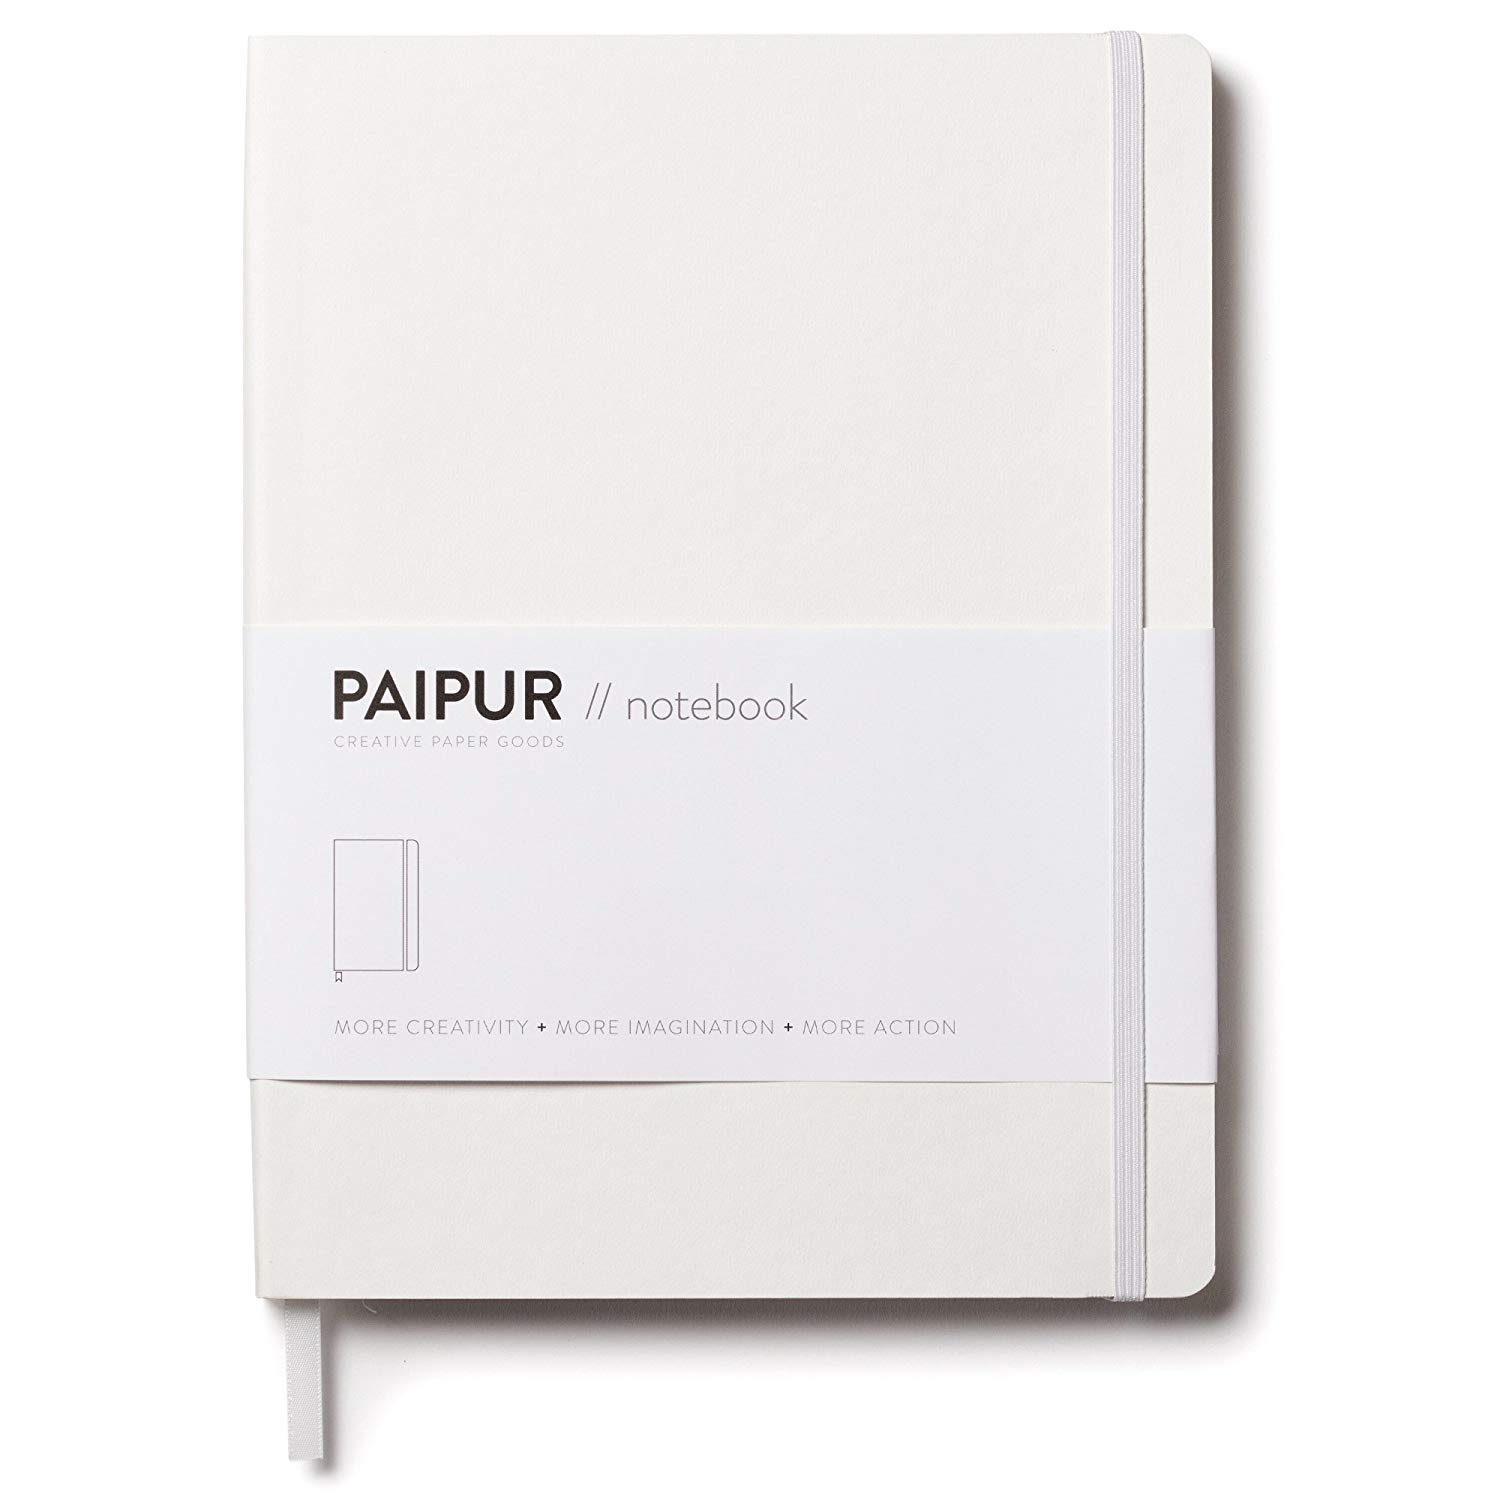 """PAIPUR Notebook ~ Dotted Grid and Ruled HYBRID format ~ Mono Series NARROW 0.24"""" Spacing ~ LARGE 9.75"""" x 7.5"""" Size Journal ~ Classic Style Softcover ~ Luxe 100GSM Paper for All Pens with No Bleed"""